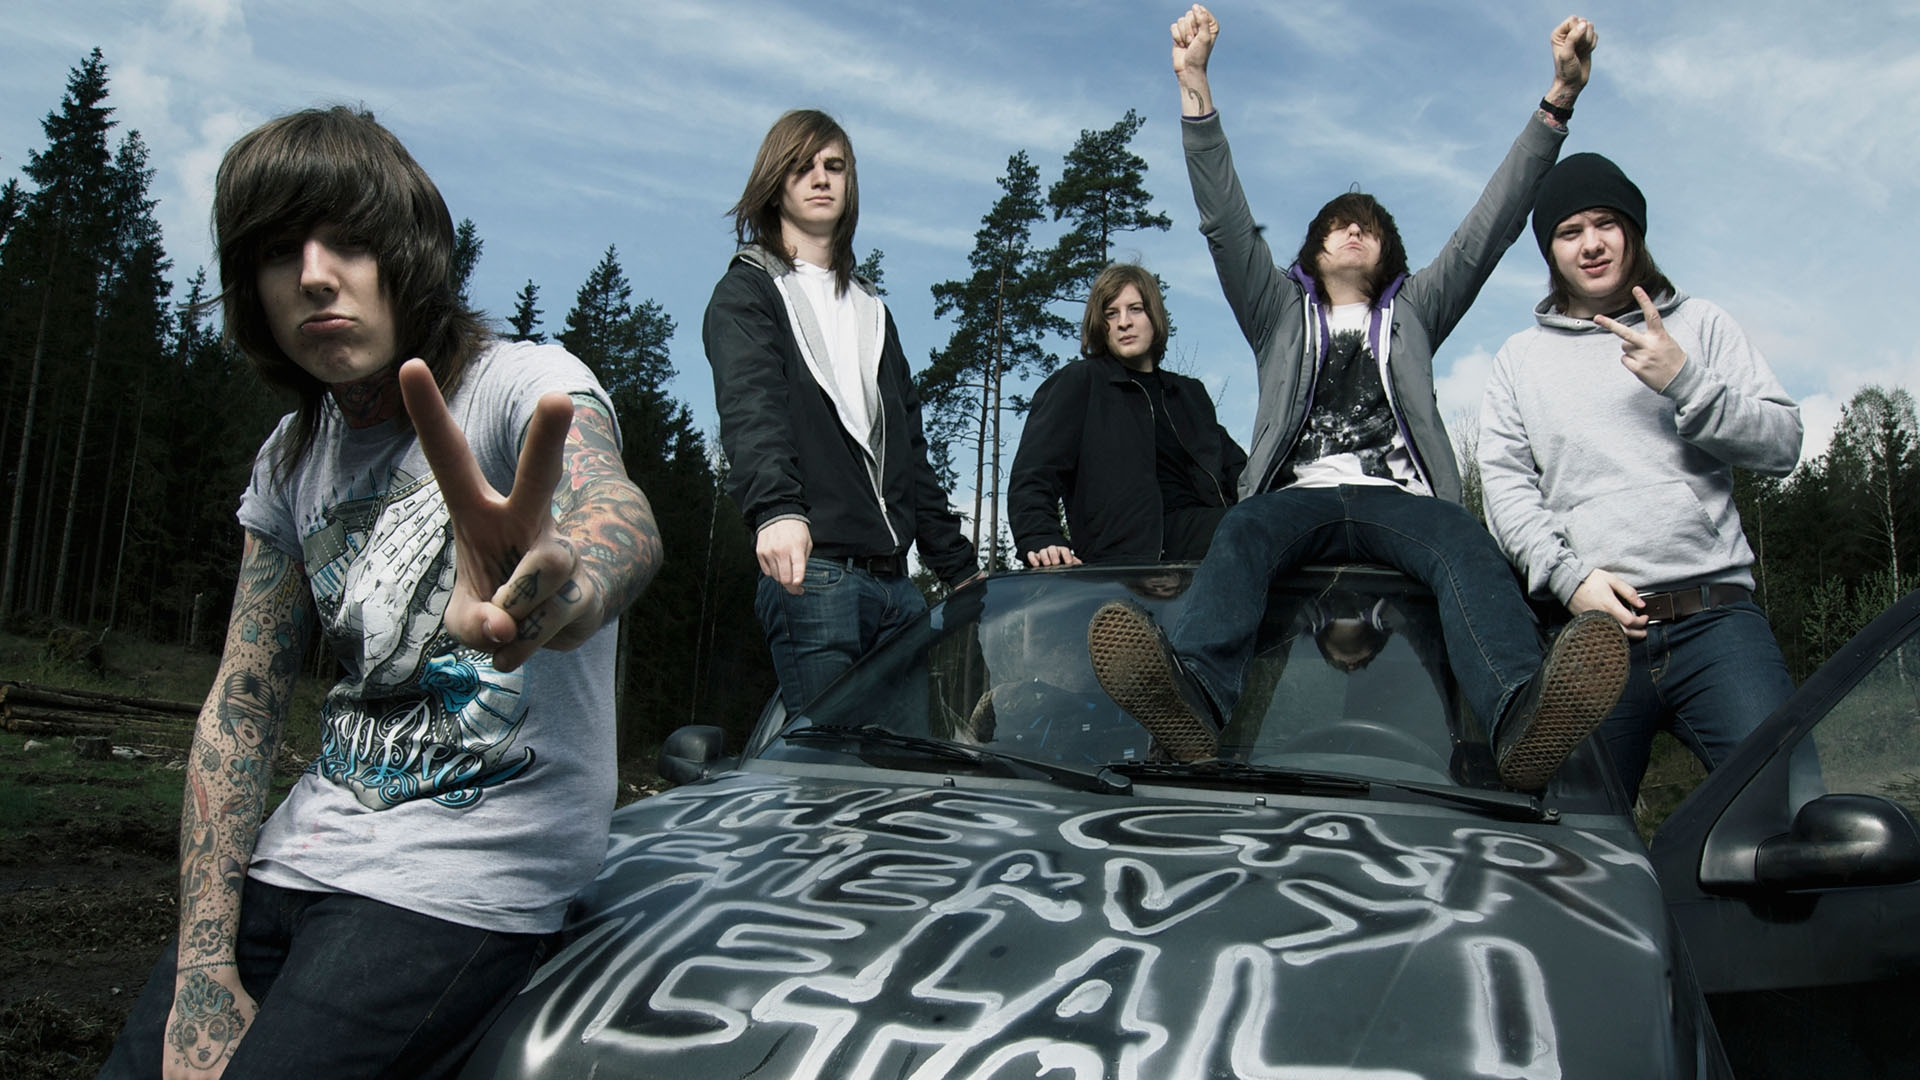 Download Wallpaper 1920x1080 Bring Me The Horizon Tattoo Forest